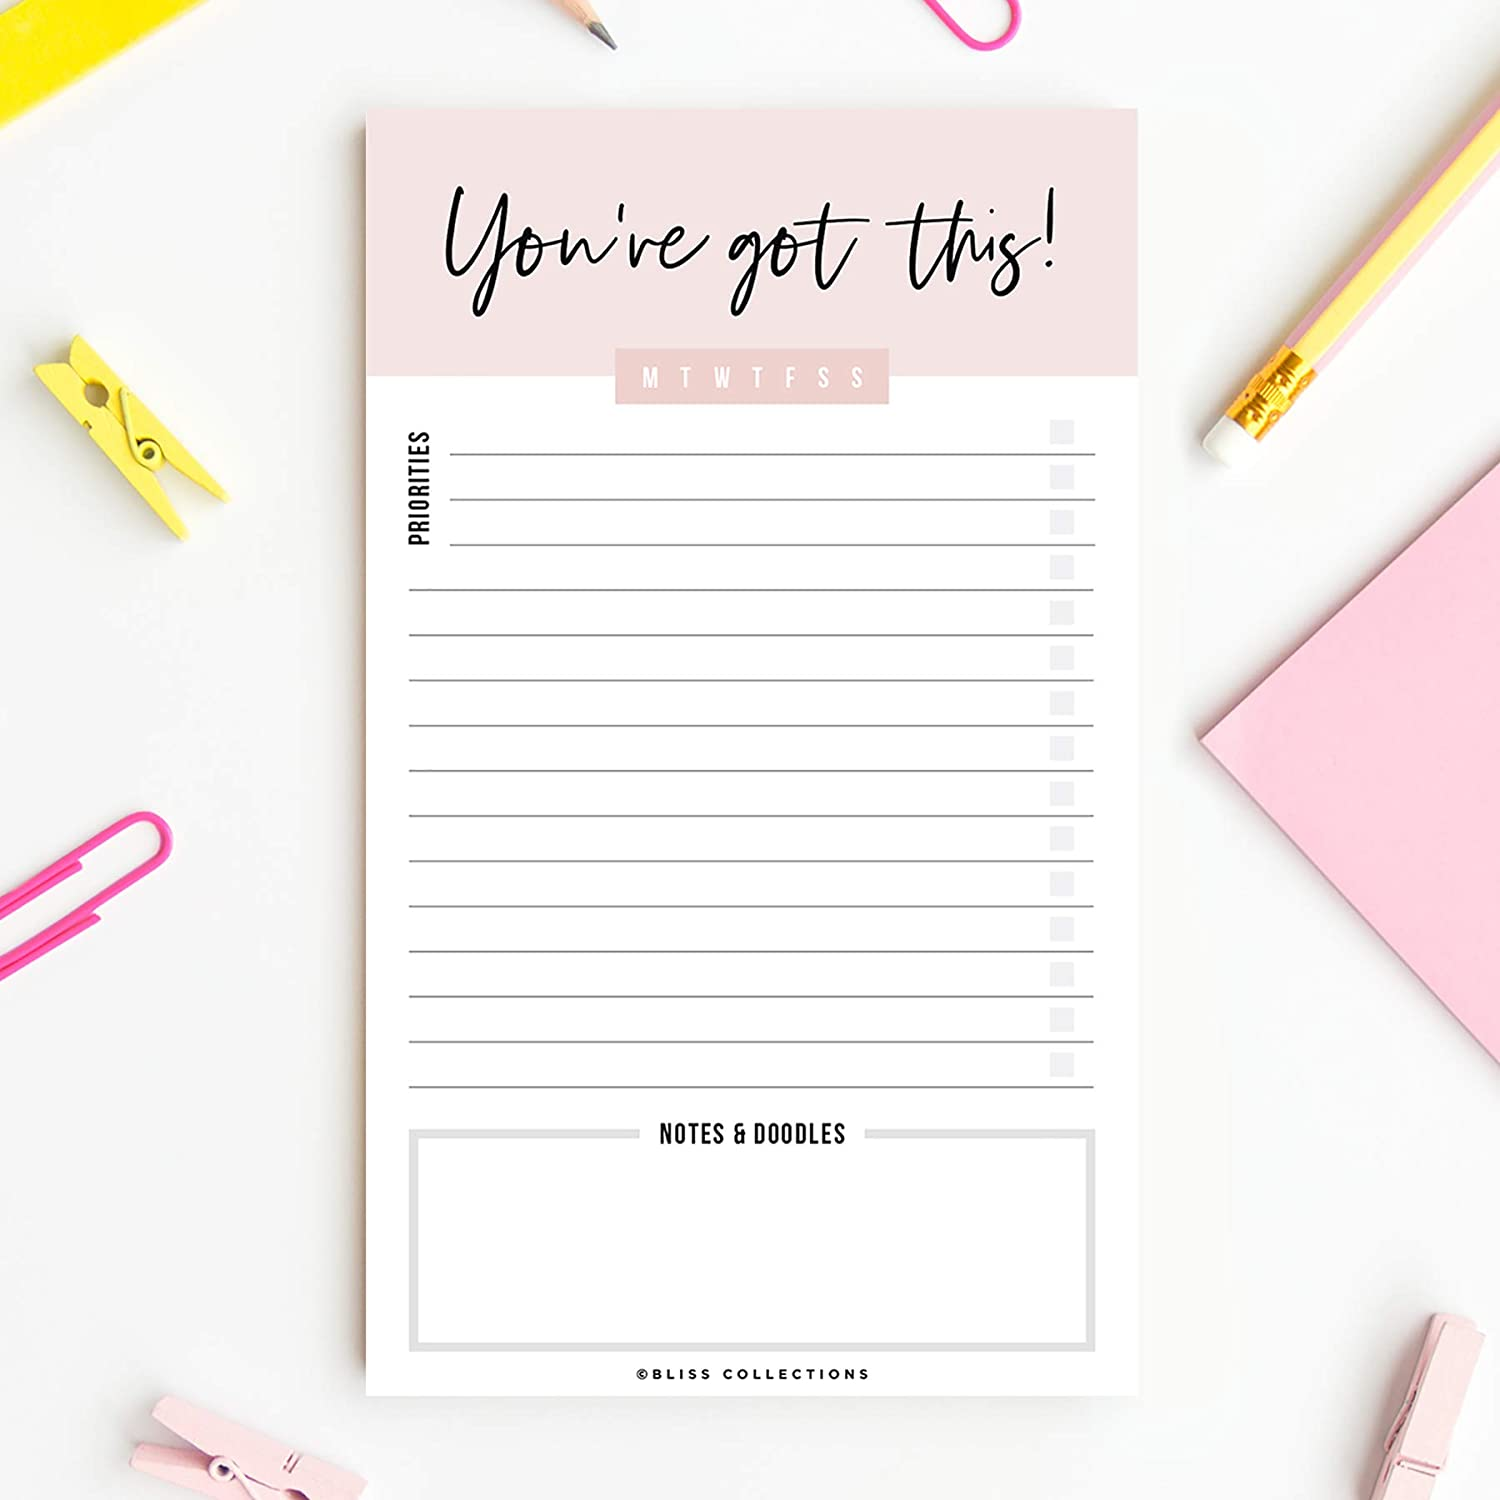 Bliss Collections Motivational Daily to Do List Notepad, You've Got This Tear-Off Pad, Memo Pad for Shopping Lists, Reminders and Appointments, 4.5 x 7.5 inches, 50 Sheets (Optional Magnet Included)